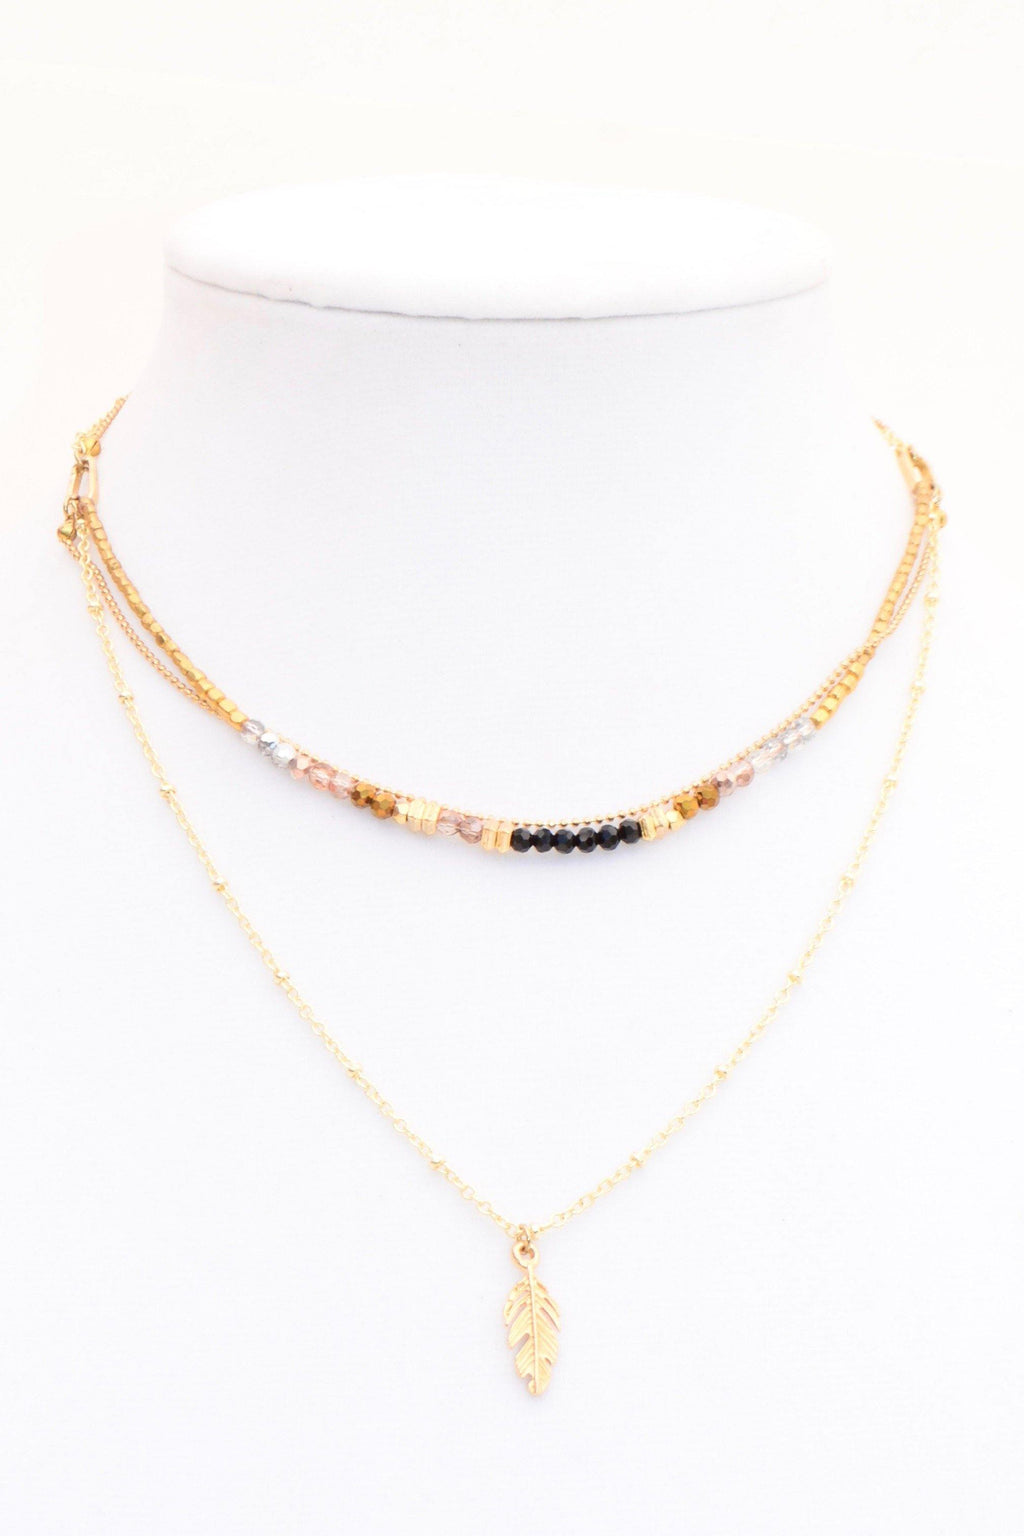 This is a handmade fairtrade beaded necklace named Faye. This beautiful gemstone, gold, and gold feather charmed necklace is elegant but casual enough to wear with your day-to-day outfits. It has a waterfall of earthy colors, that will make your outfit look spectacular! It is a layered style that is lightweight and accentuates your gorgeous necklines.